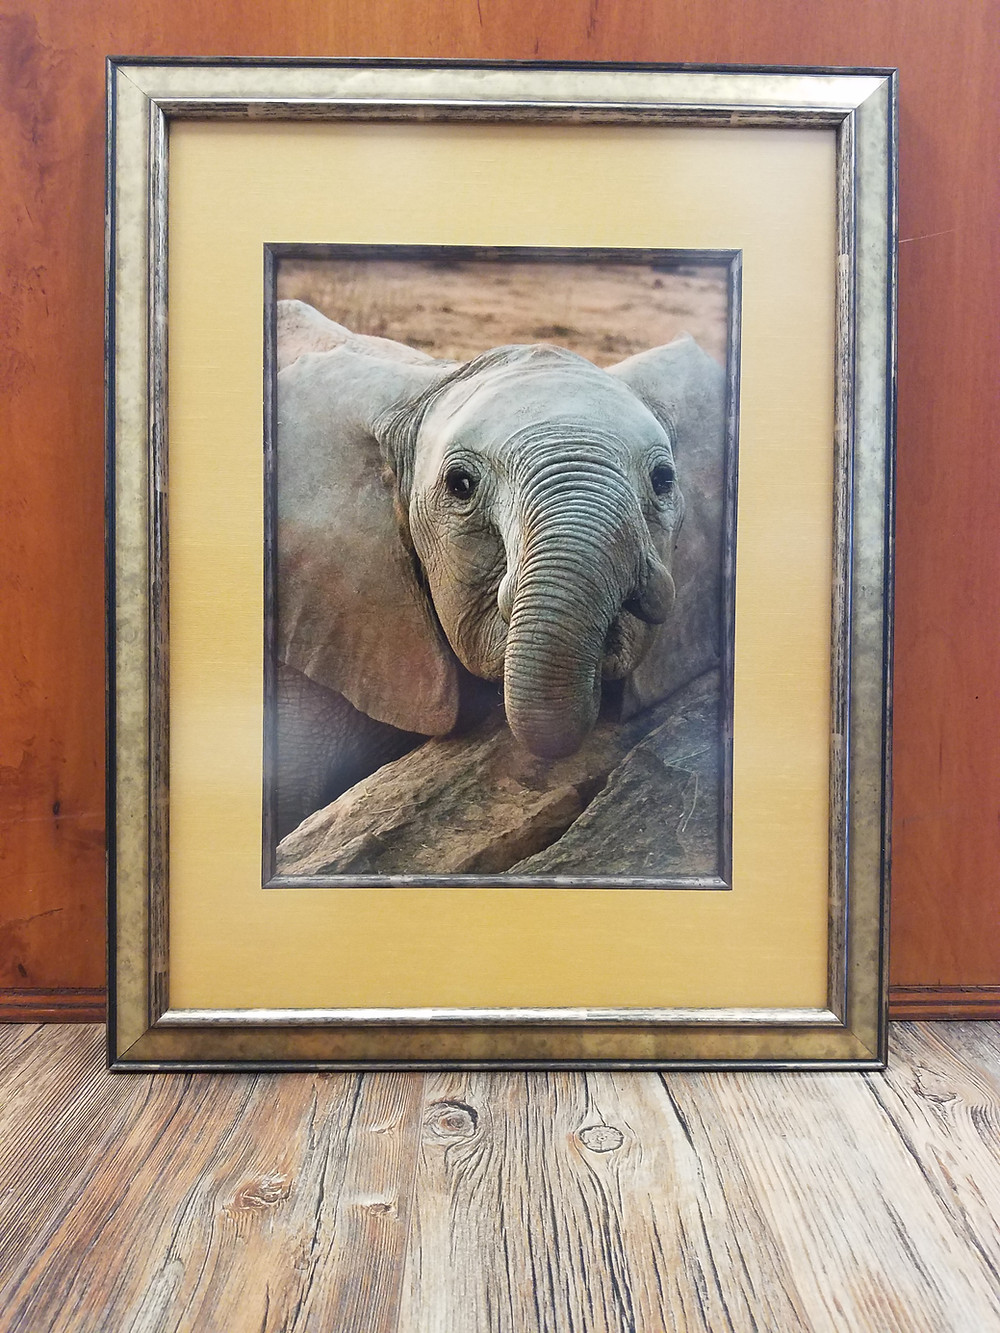 Elephant photo framed with filet and refection control glass